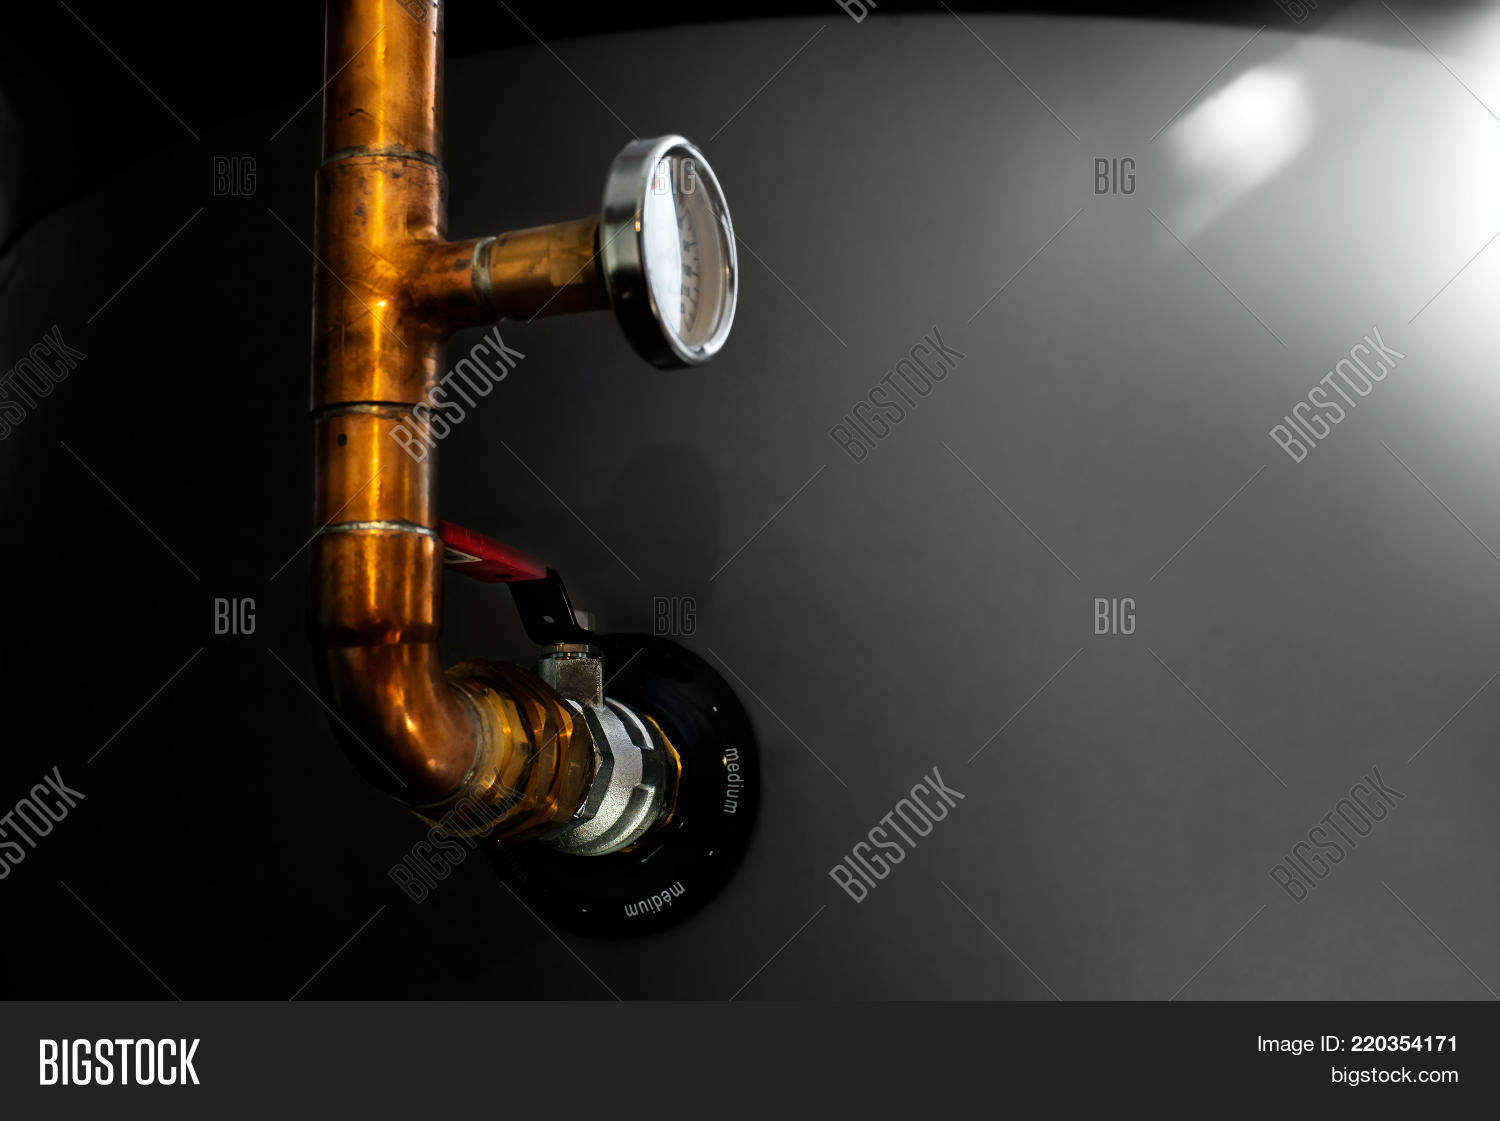 Closein Boiler Boiler Valve Image Photo Free Trial Bigstock